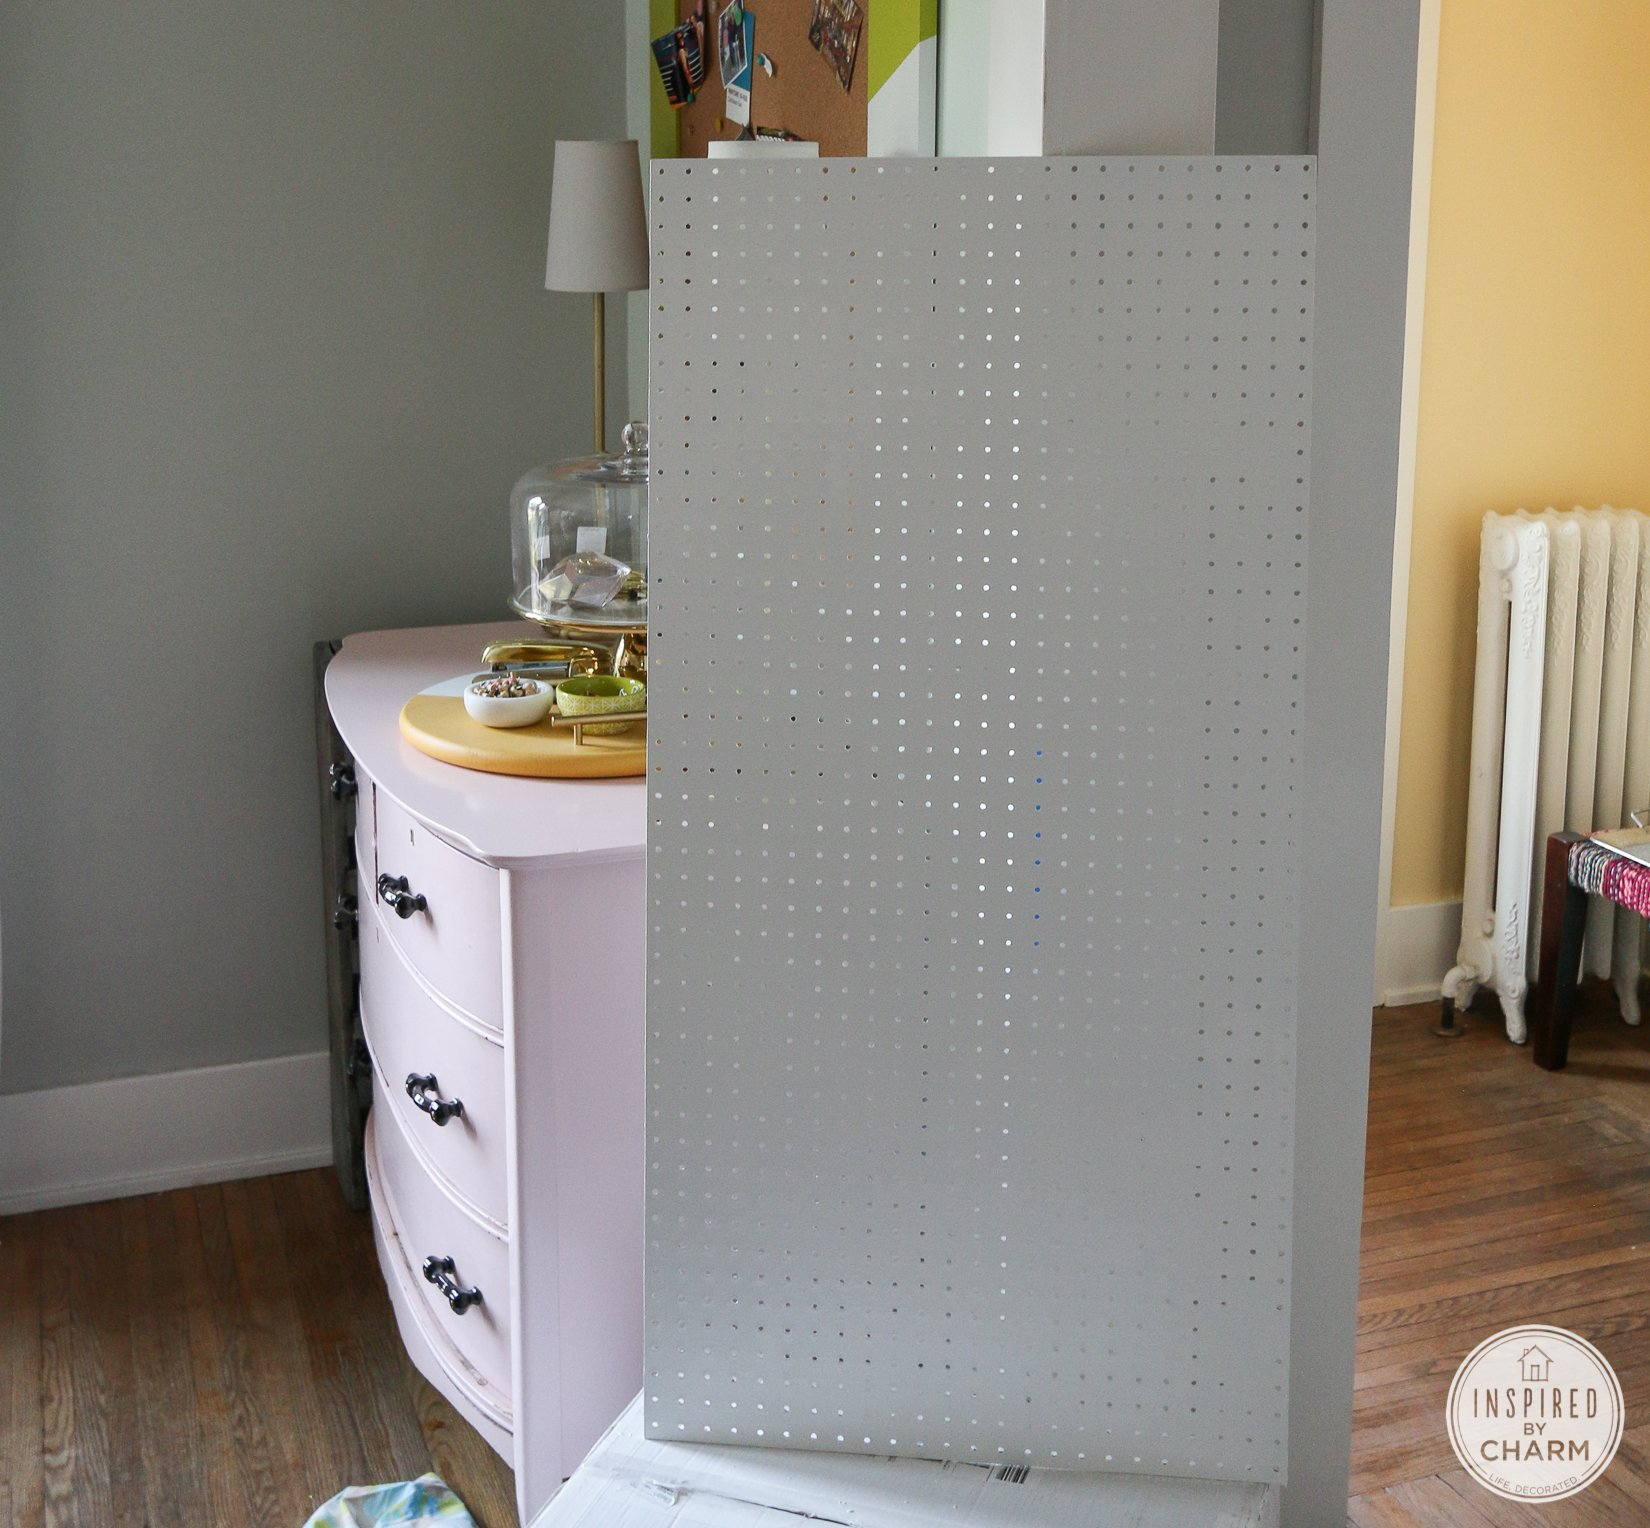 pegboard kitchen storage inspired by charm pegboard kitchen storage inspired by charm